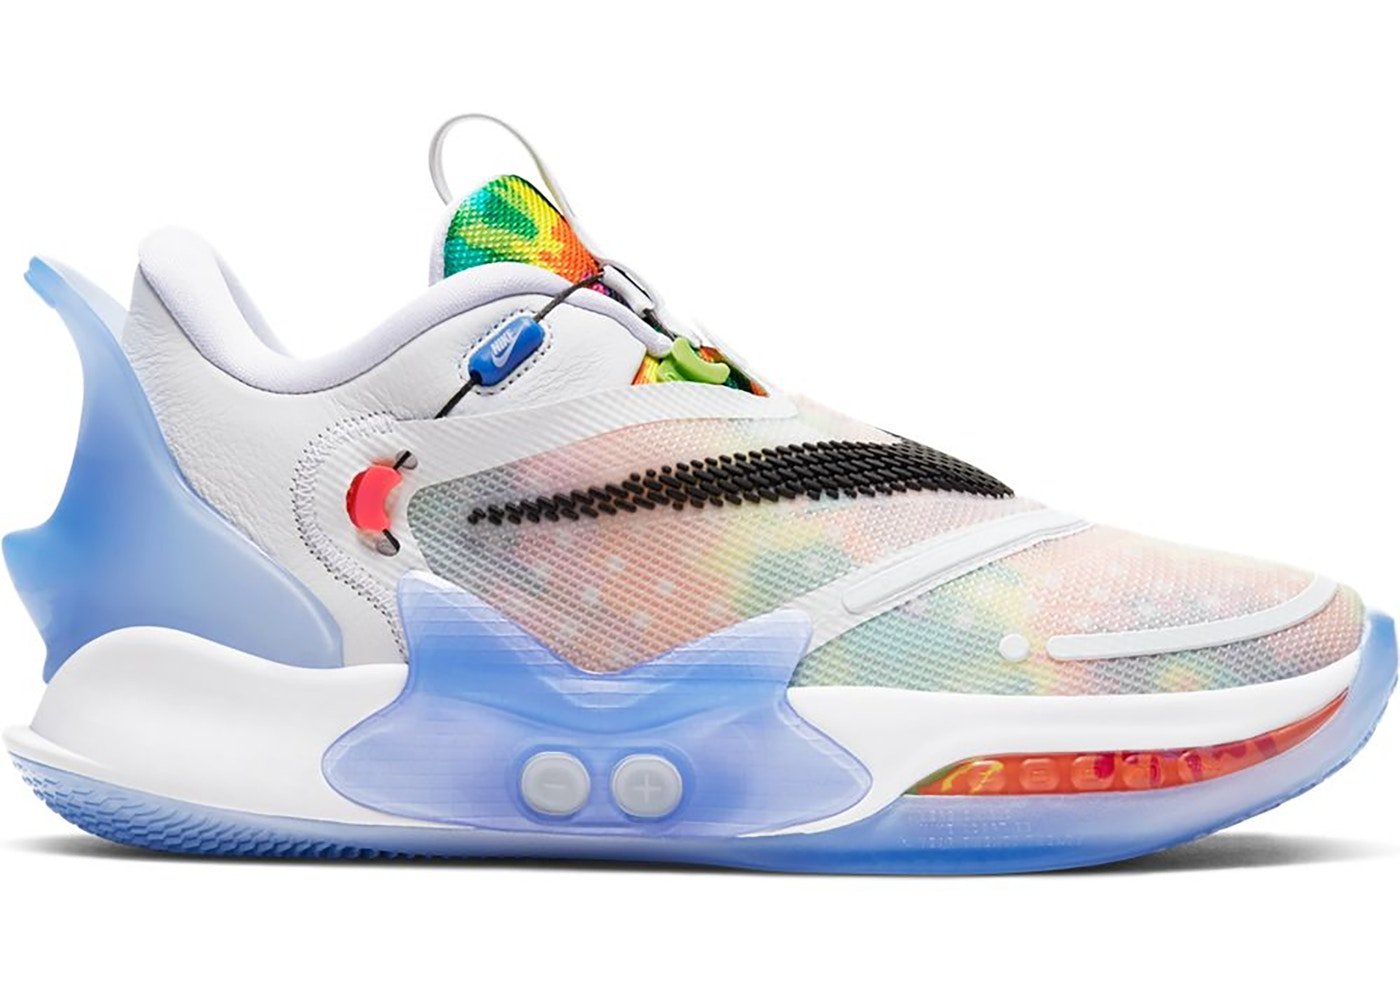 Nike Adapt Bb 2 0 Tie Dye Us Charger Bq5397 100